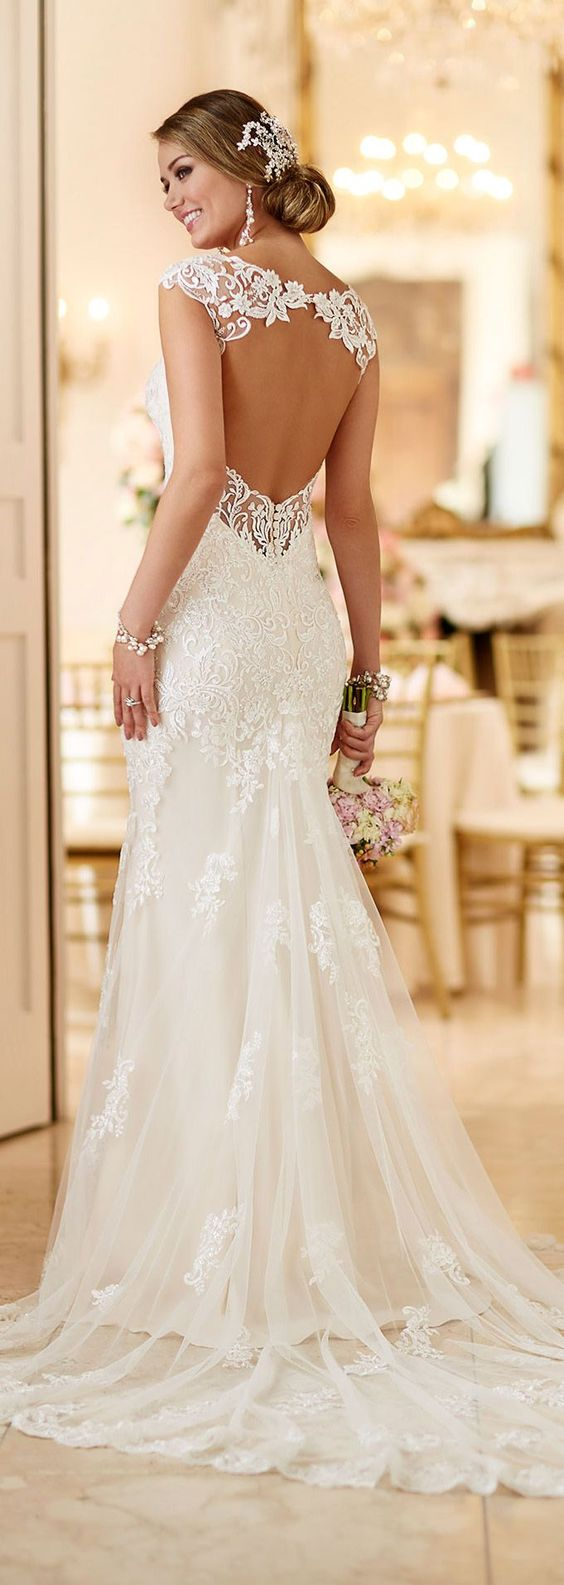 What a luxury dress!! That is one of a kind! Want help planning ...